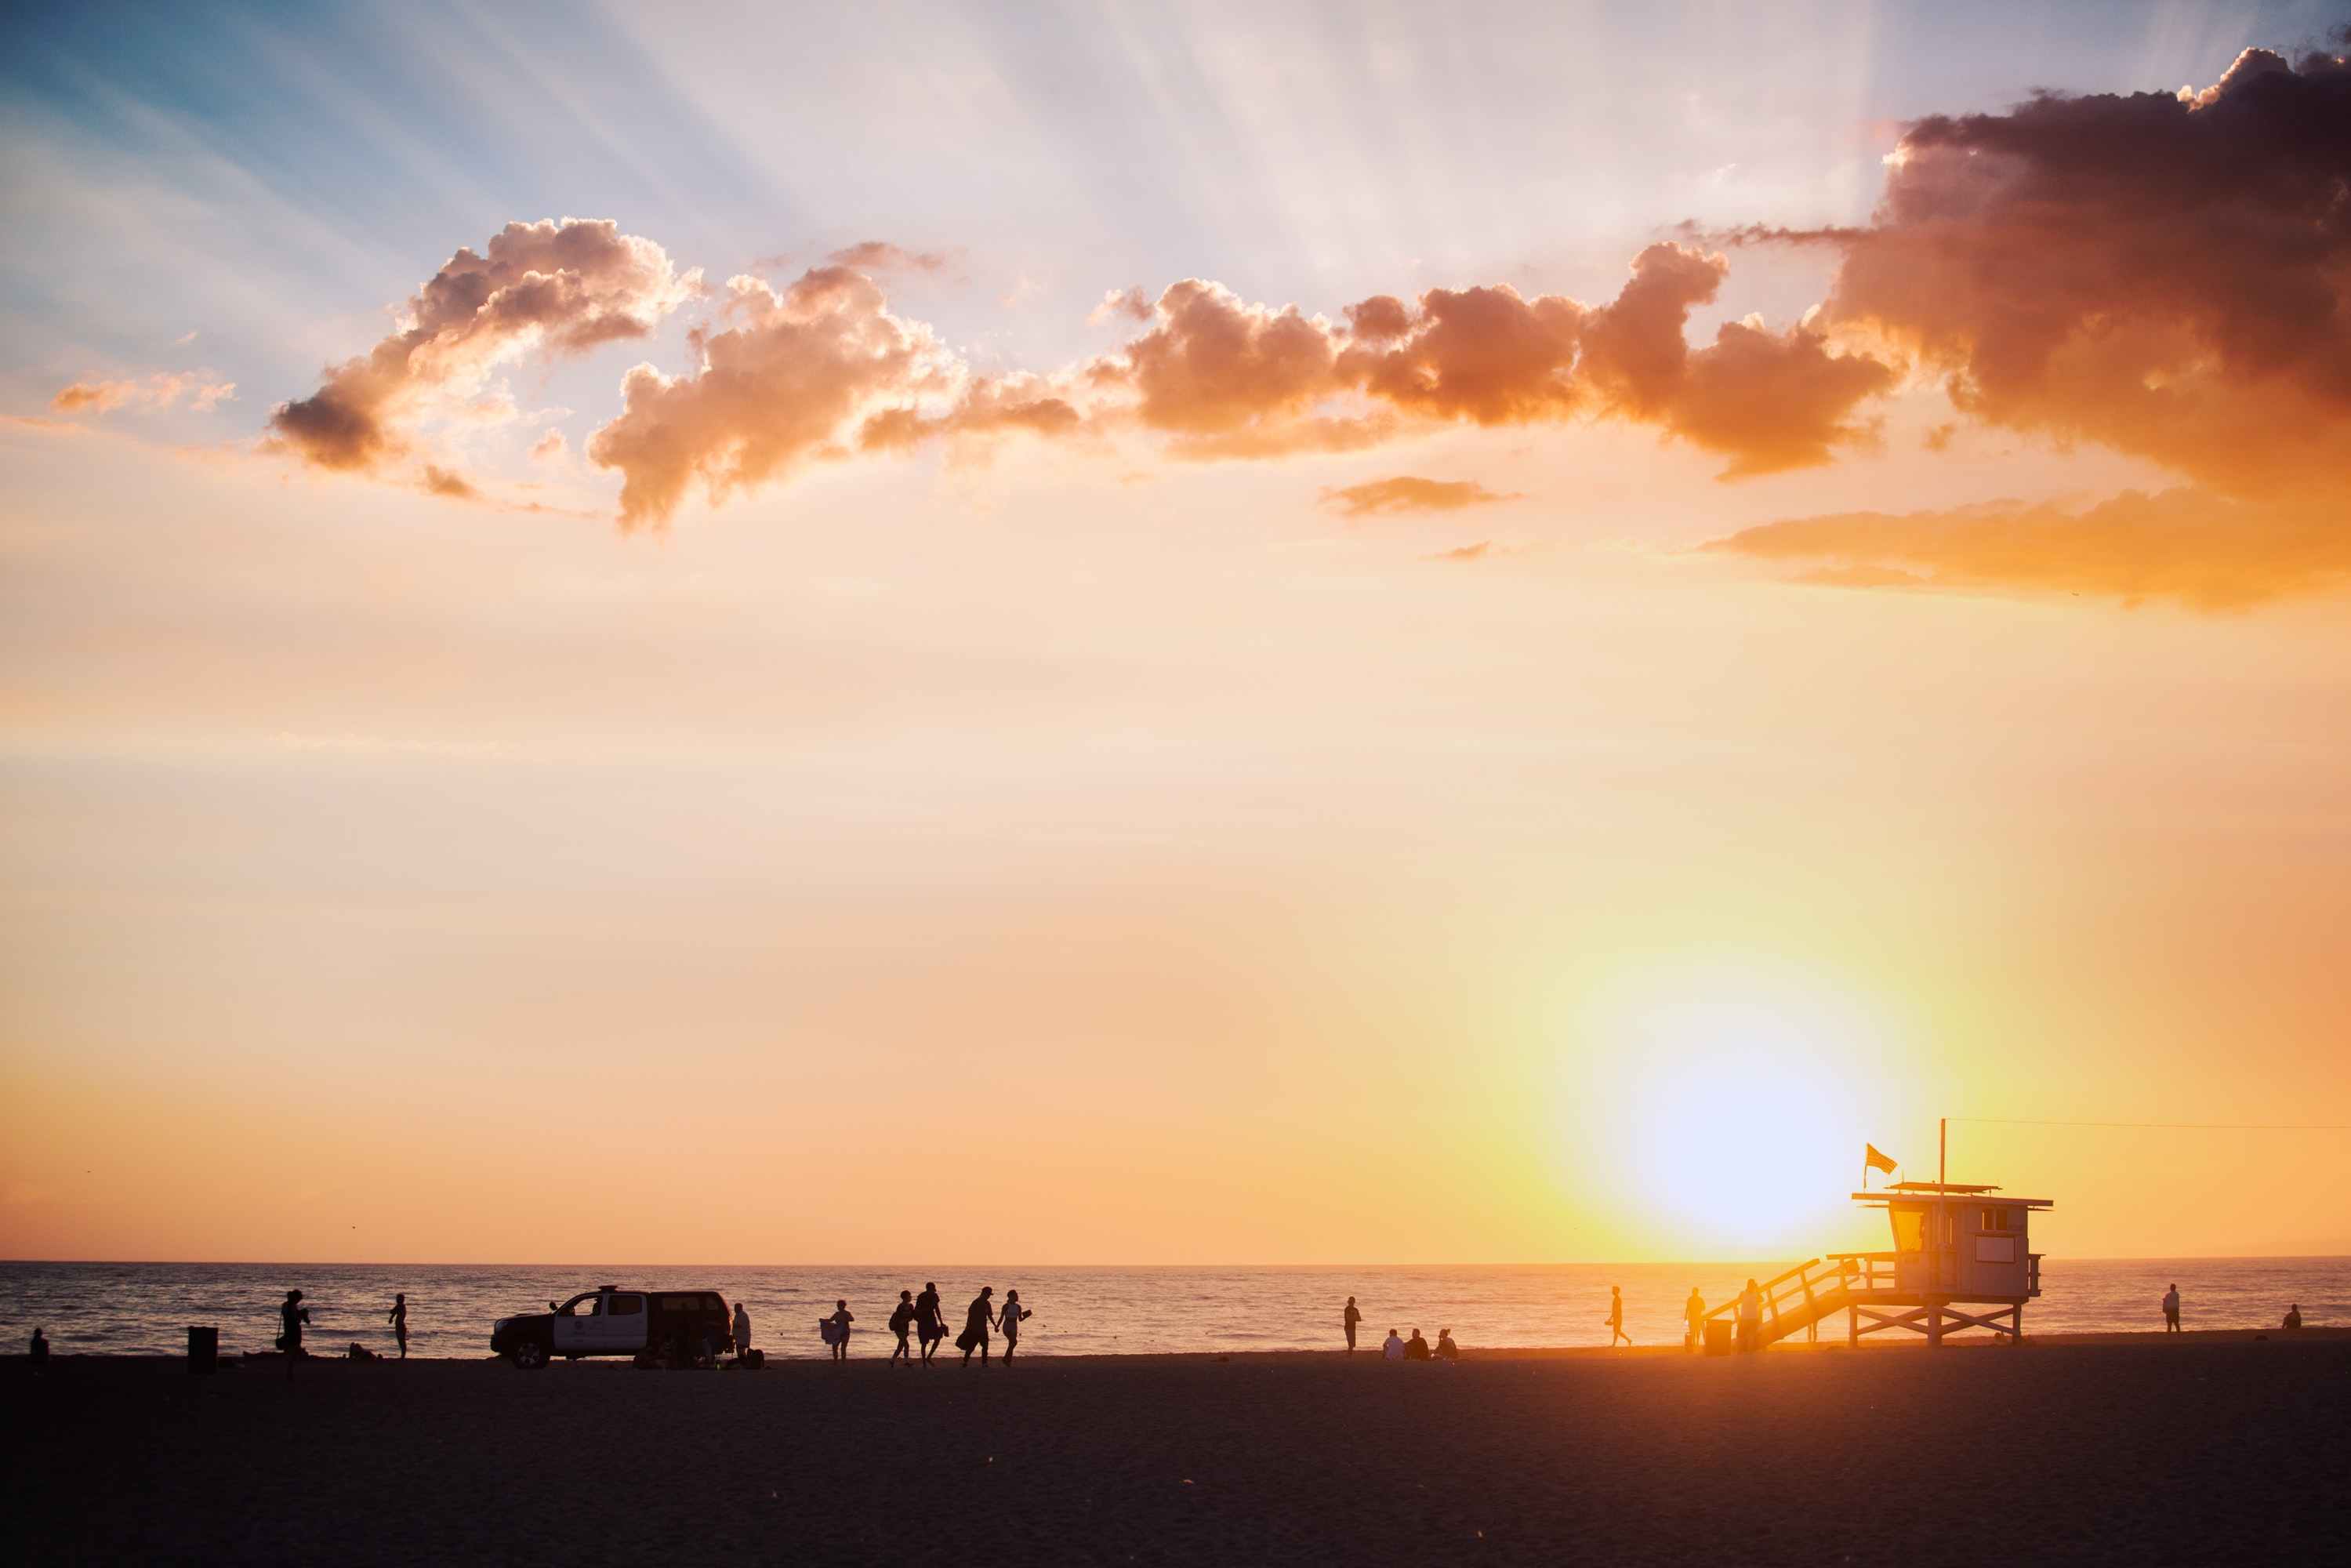 Sunset from a crowded beach at The Venice Beach Boardwalk